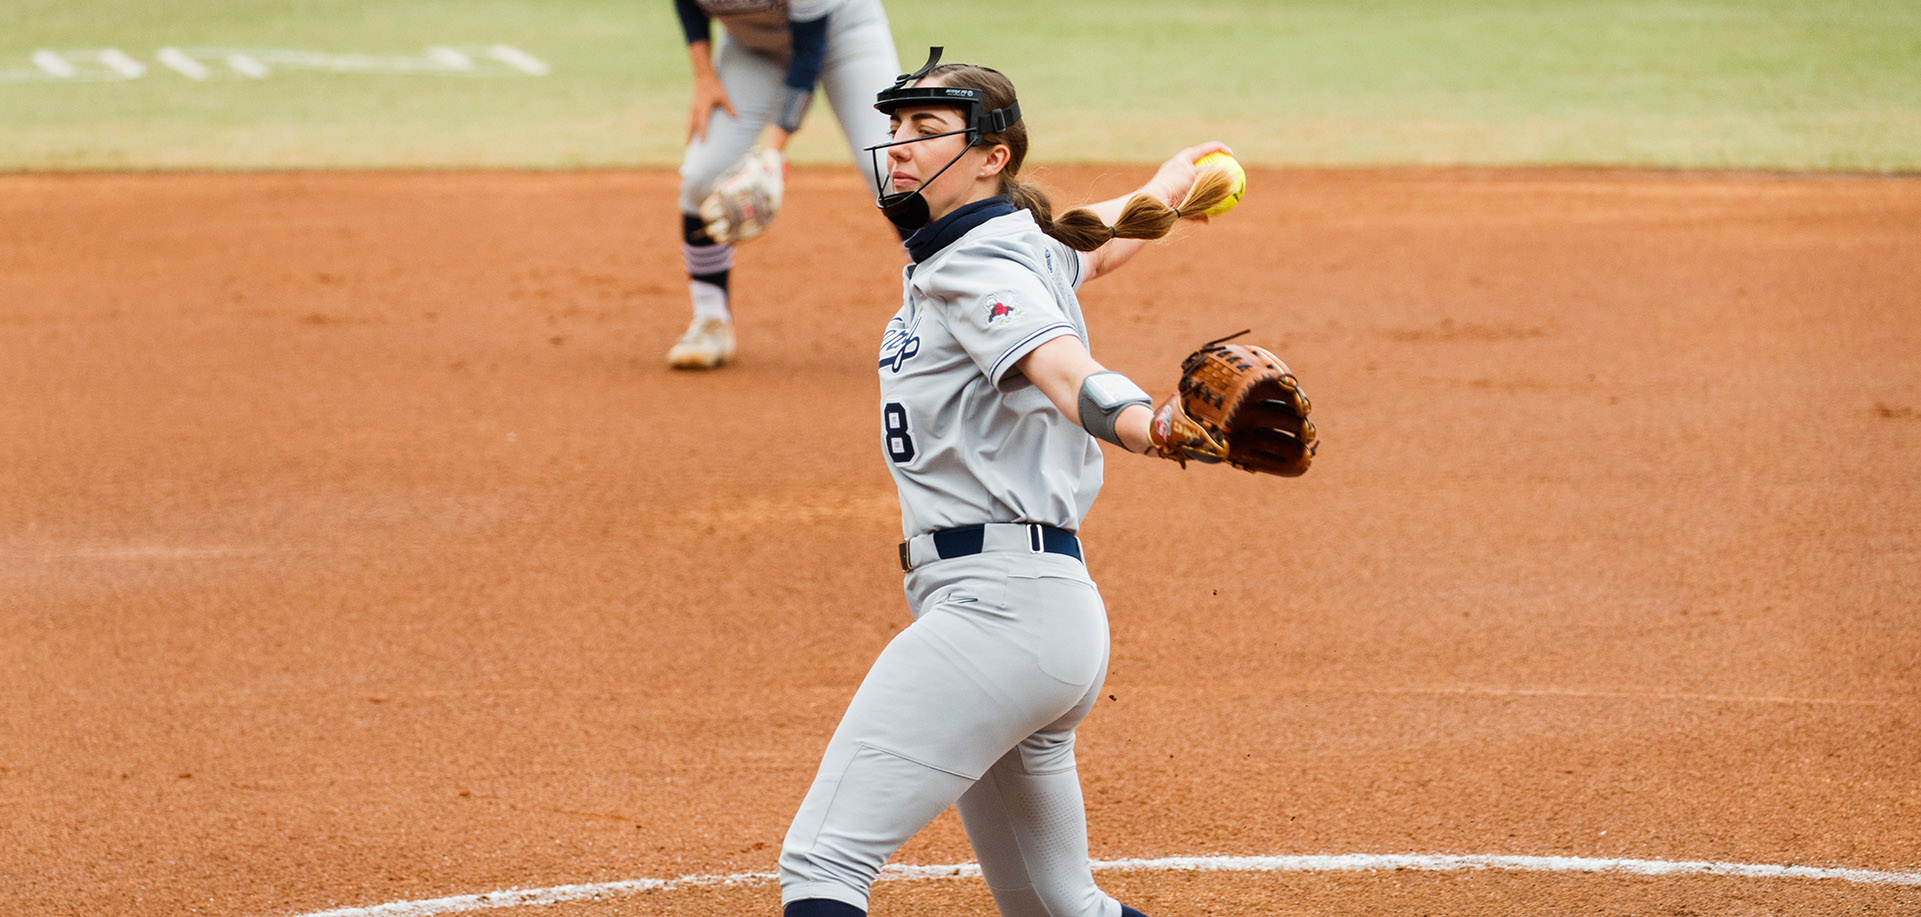 Karlie Keeney was named ASUN Softball Pitcher of the Week.